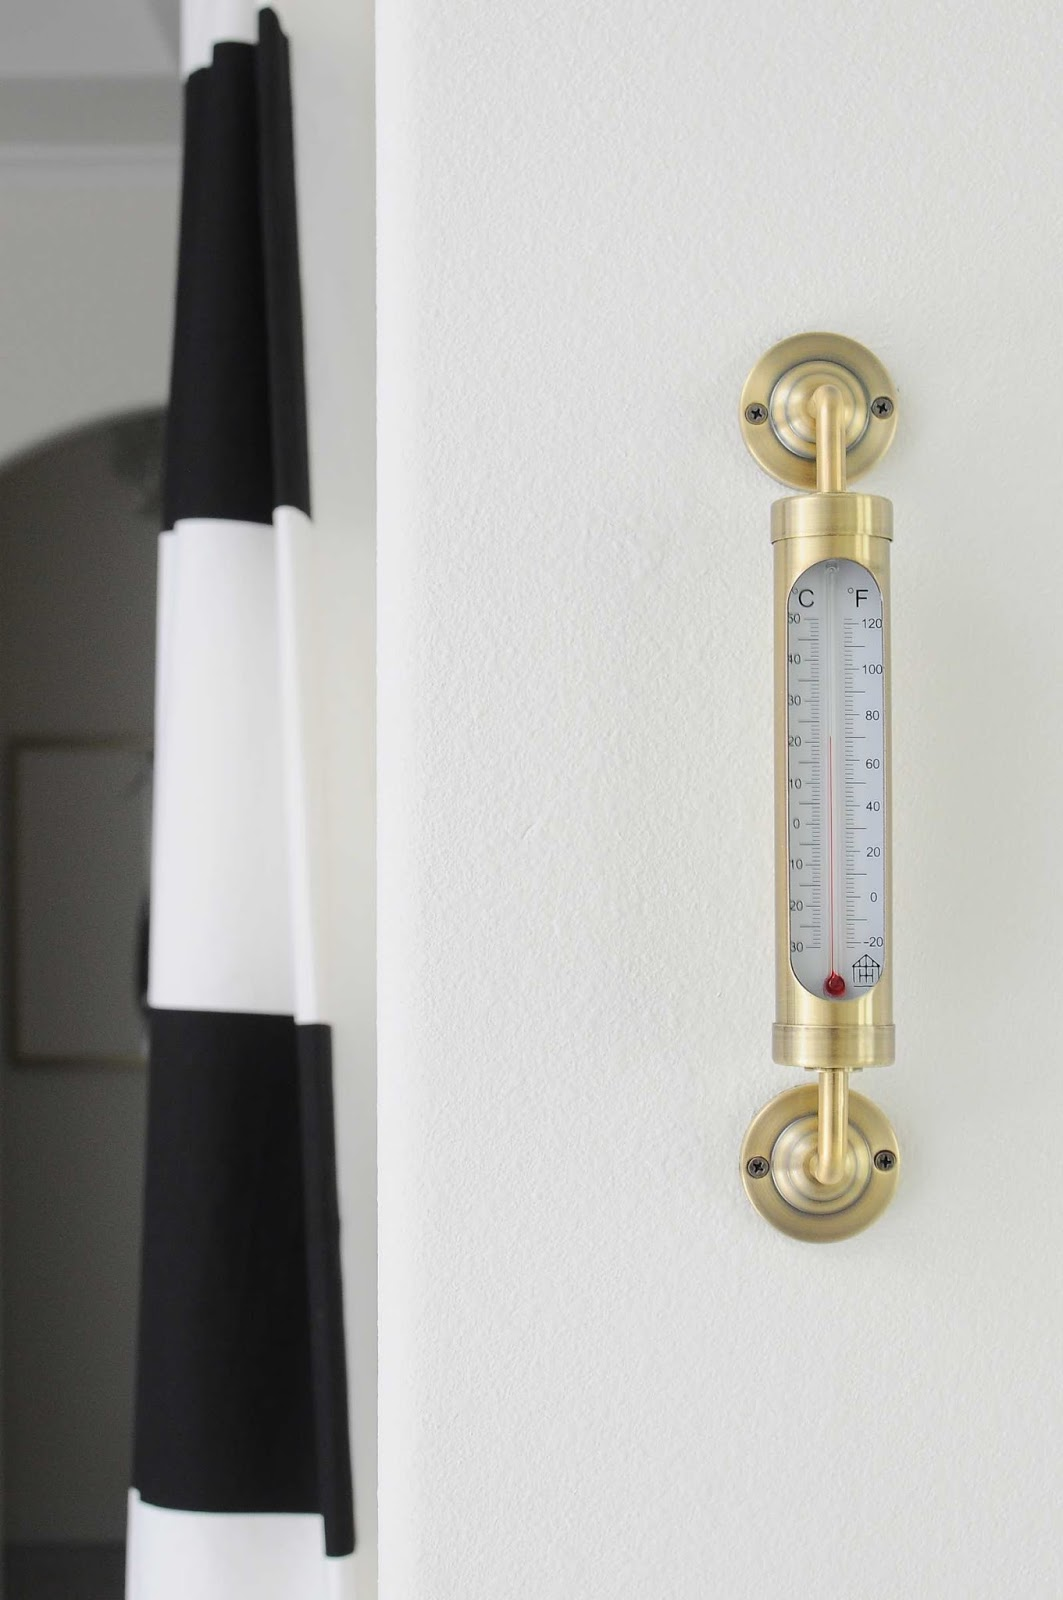 Gorgeous brass and gold thermometer.